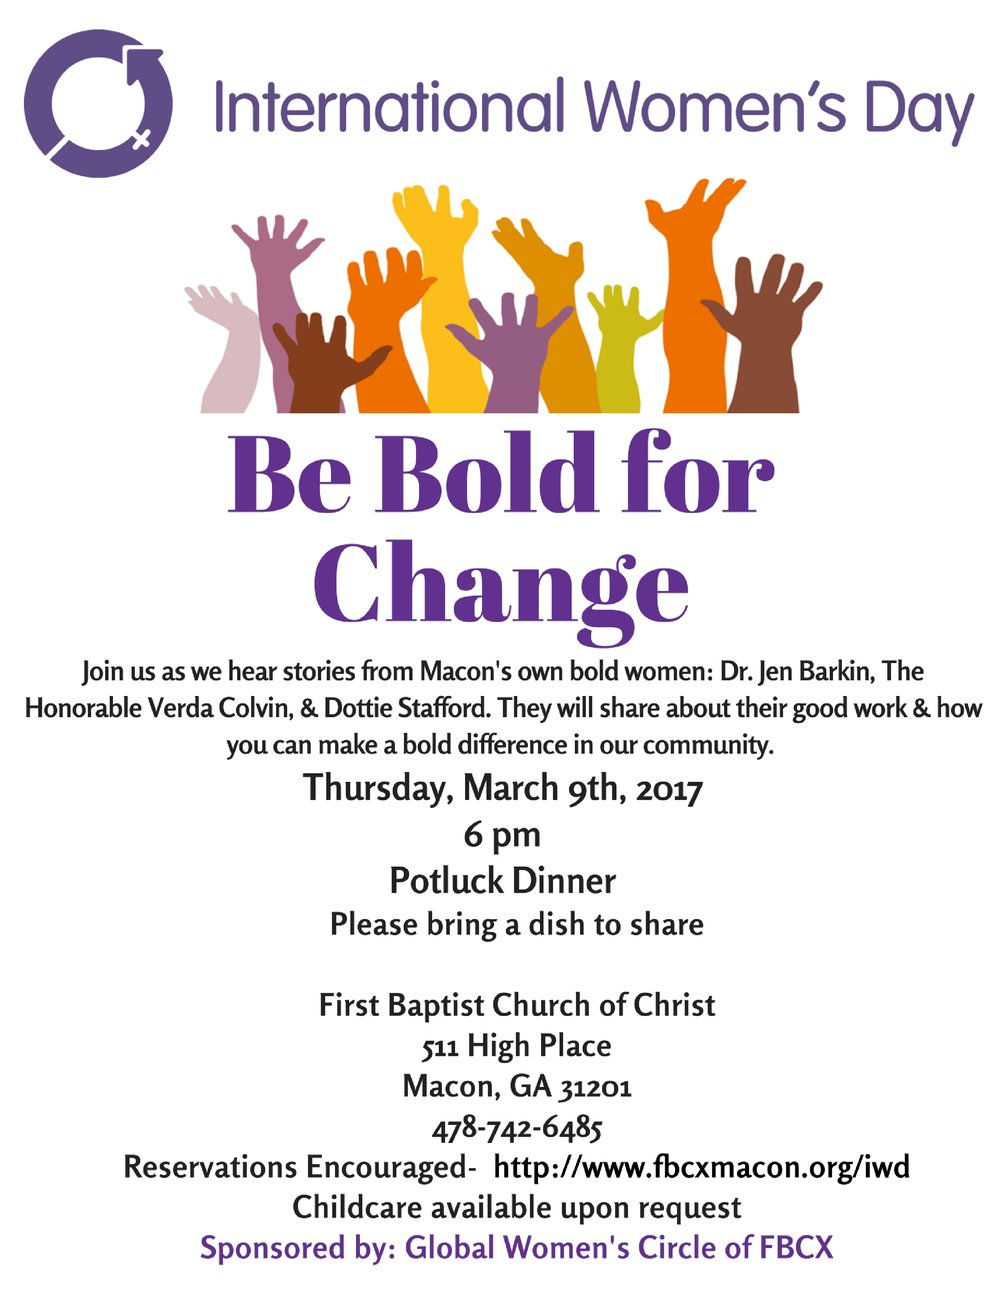 Be Bold for Change.jpg